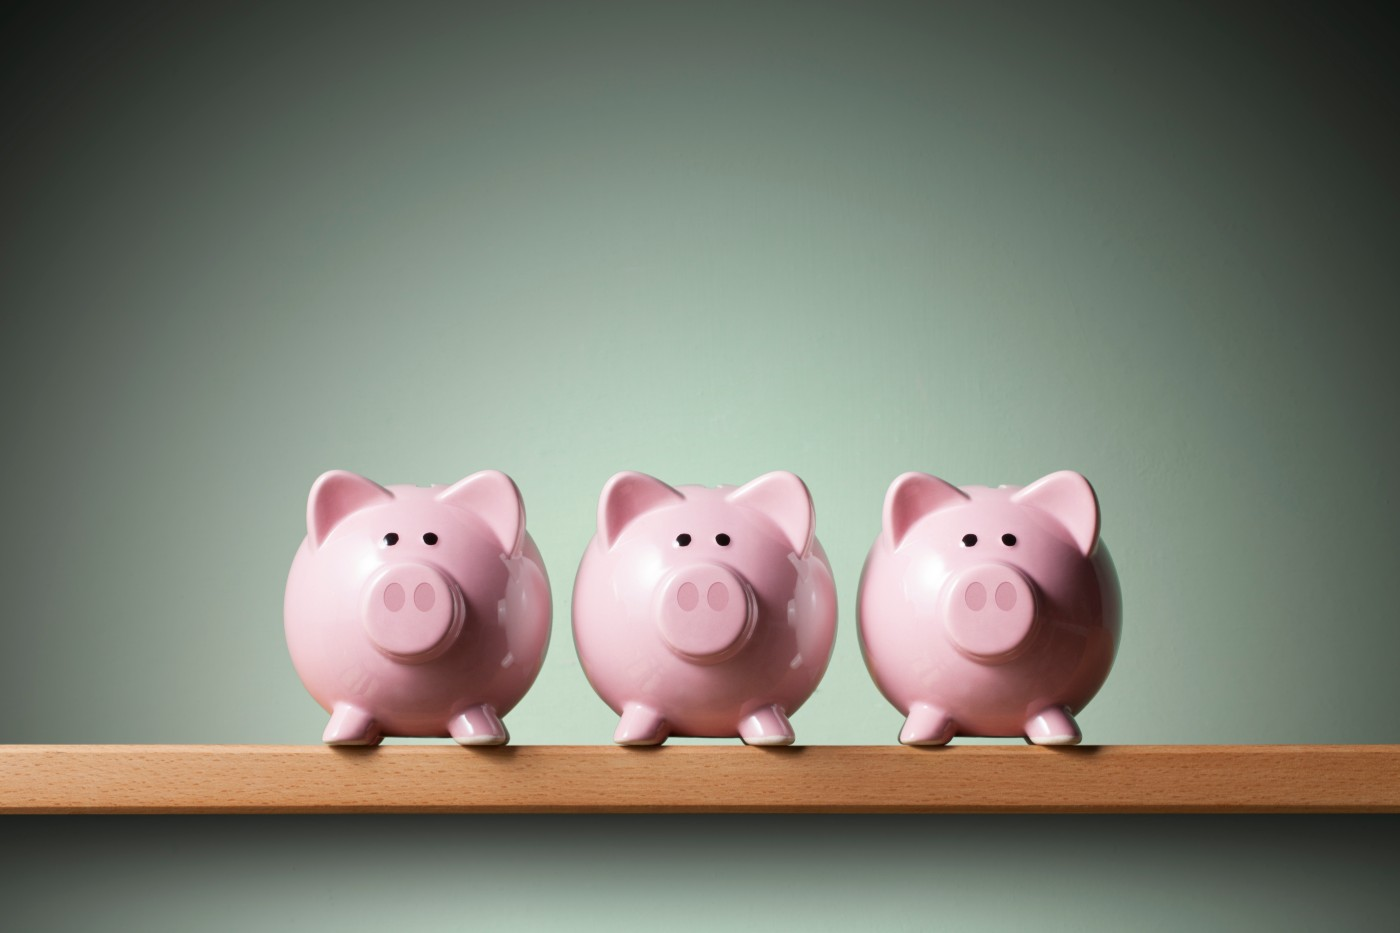 https://tickertapecdn.tdameritrade.com/assets/images/pages/md/Extra cash? 5 financially savvy ways to spend it